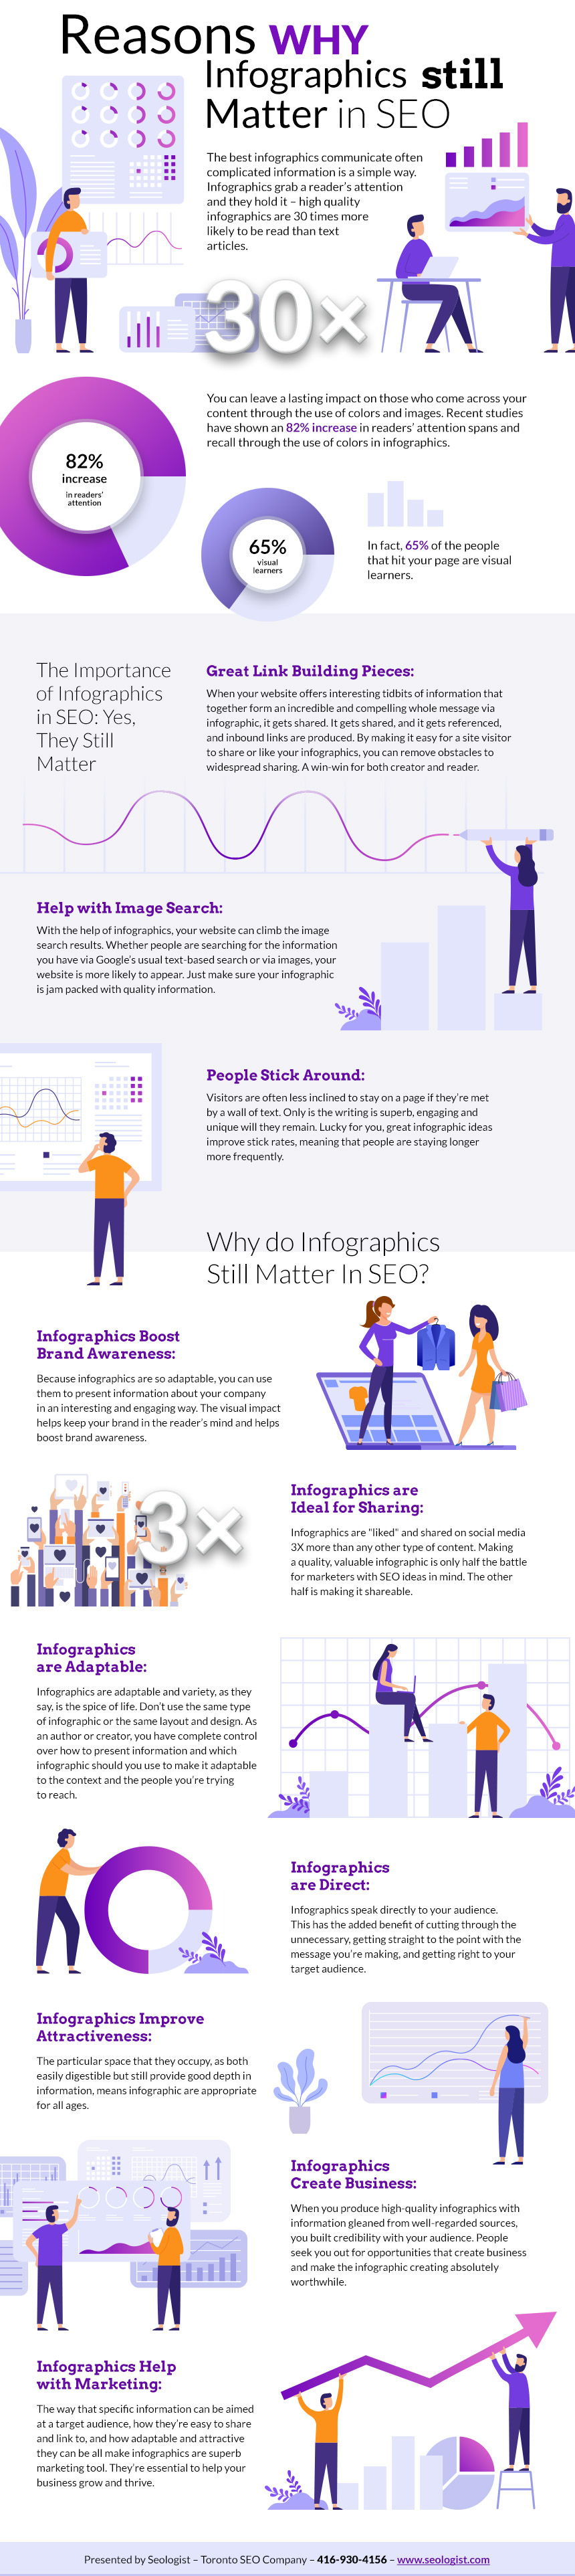 Reasons Why Infographics Still Matter in SEO